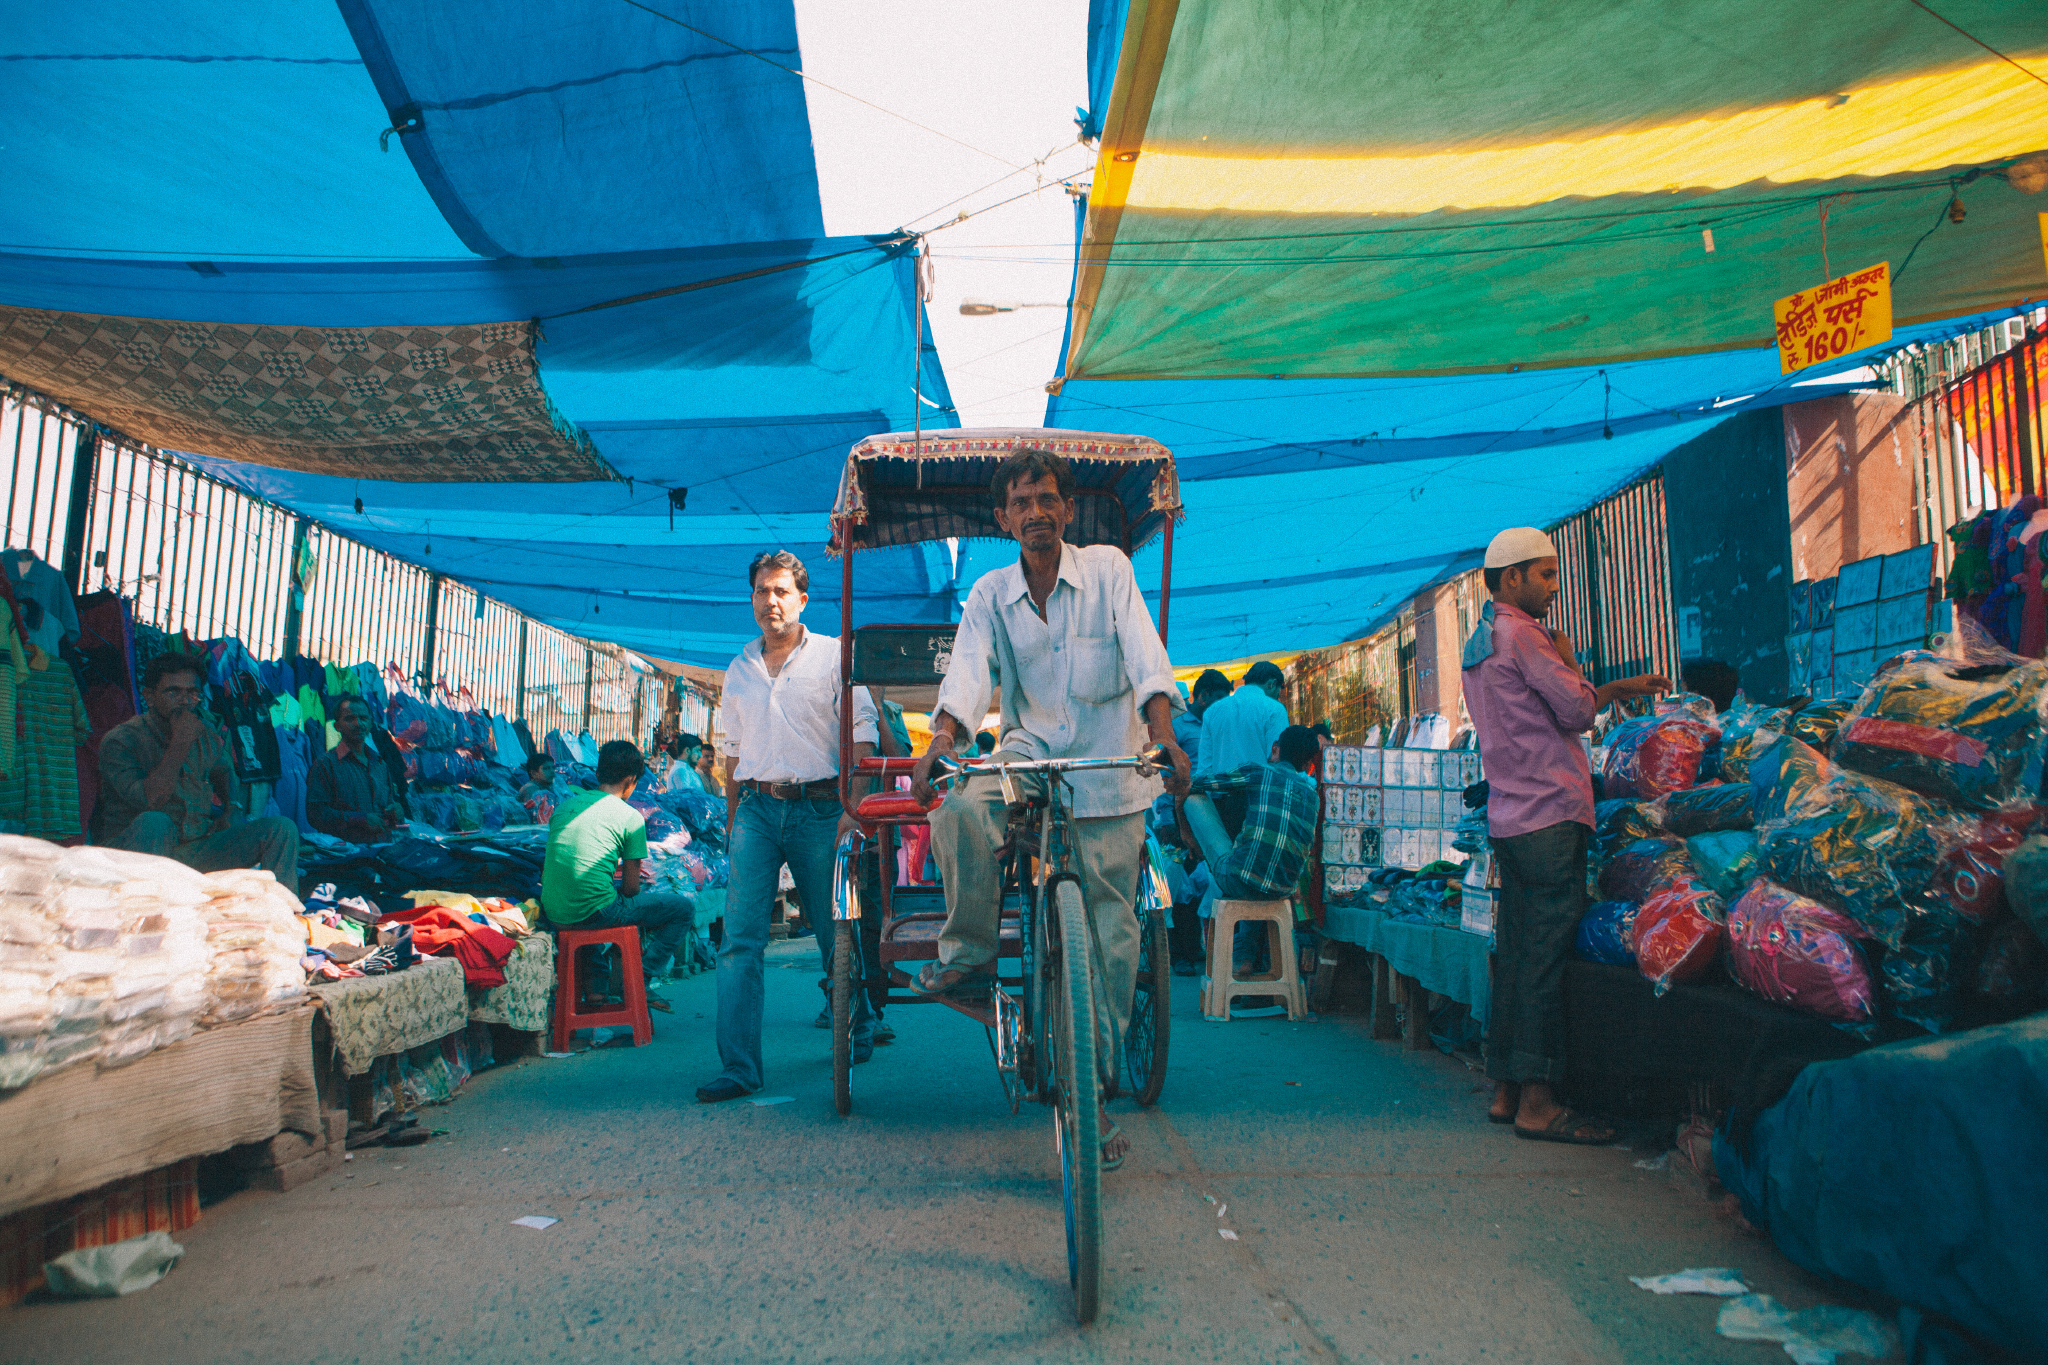 san diego wedding   photographer | man riding rickshaw under street covered in blue tarp